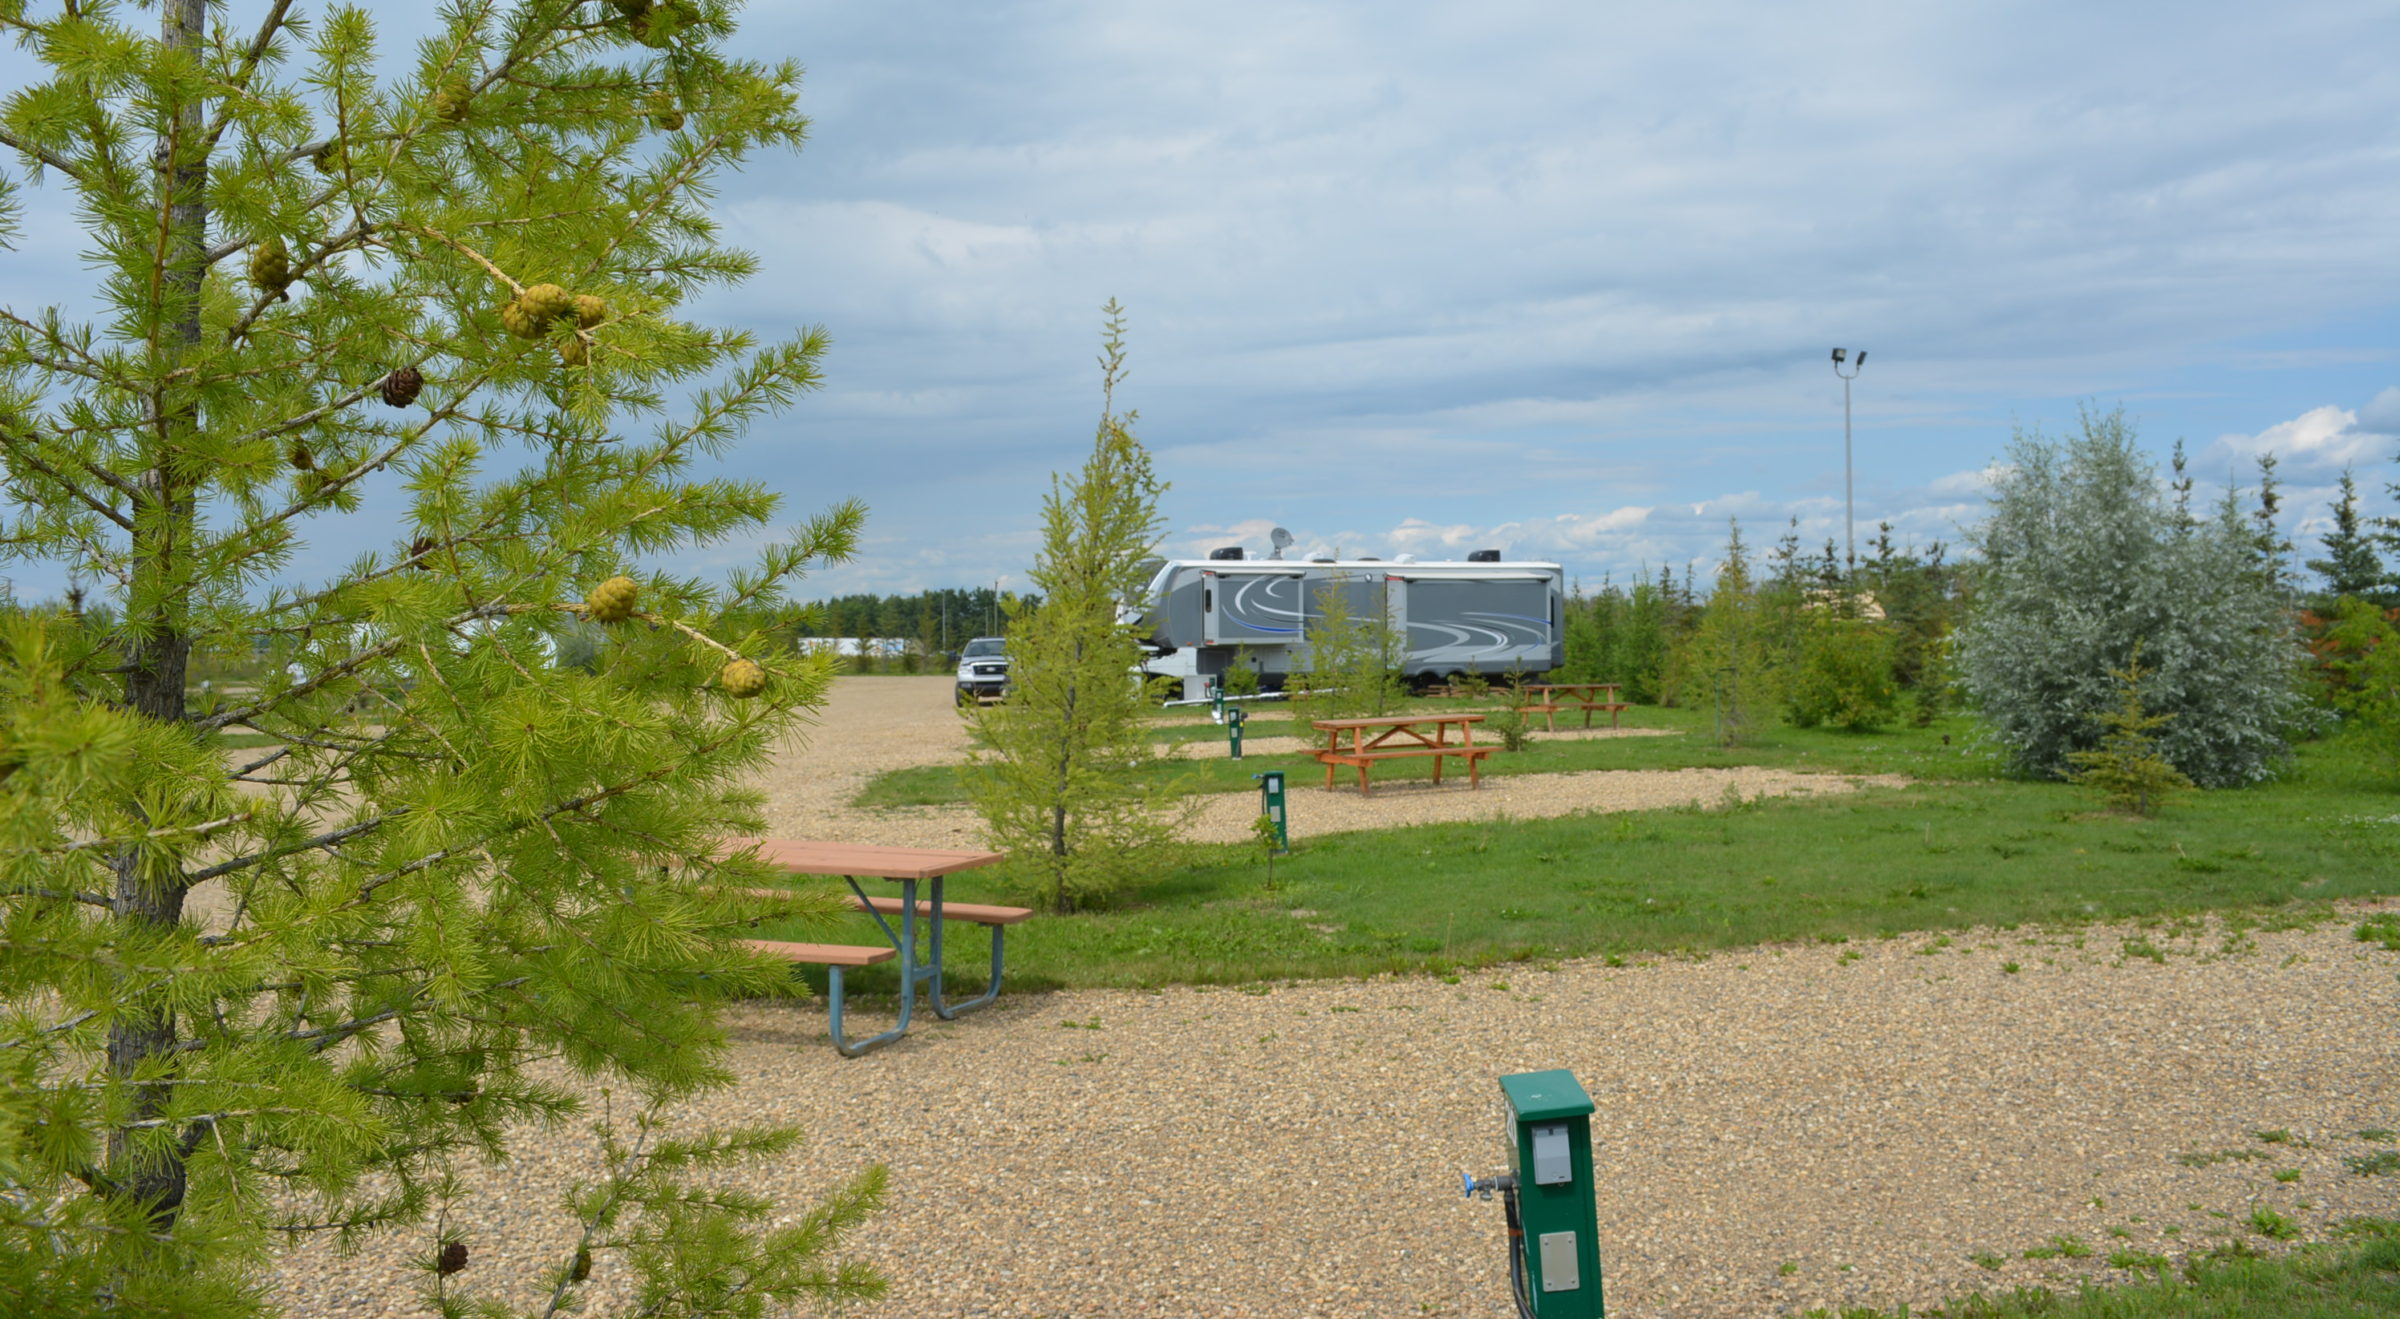 Campsite Lots, Big Rigs, 50 & 30 AMP Rendez Vous RV Park